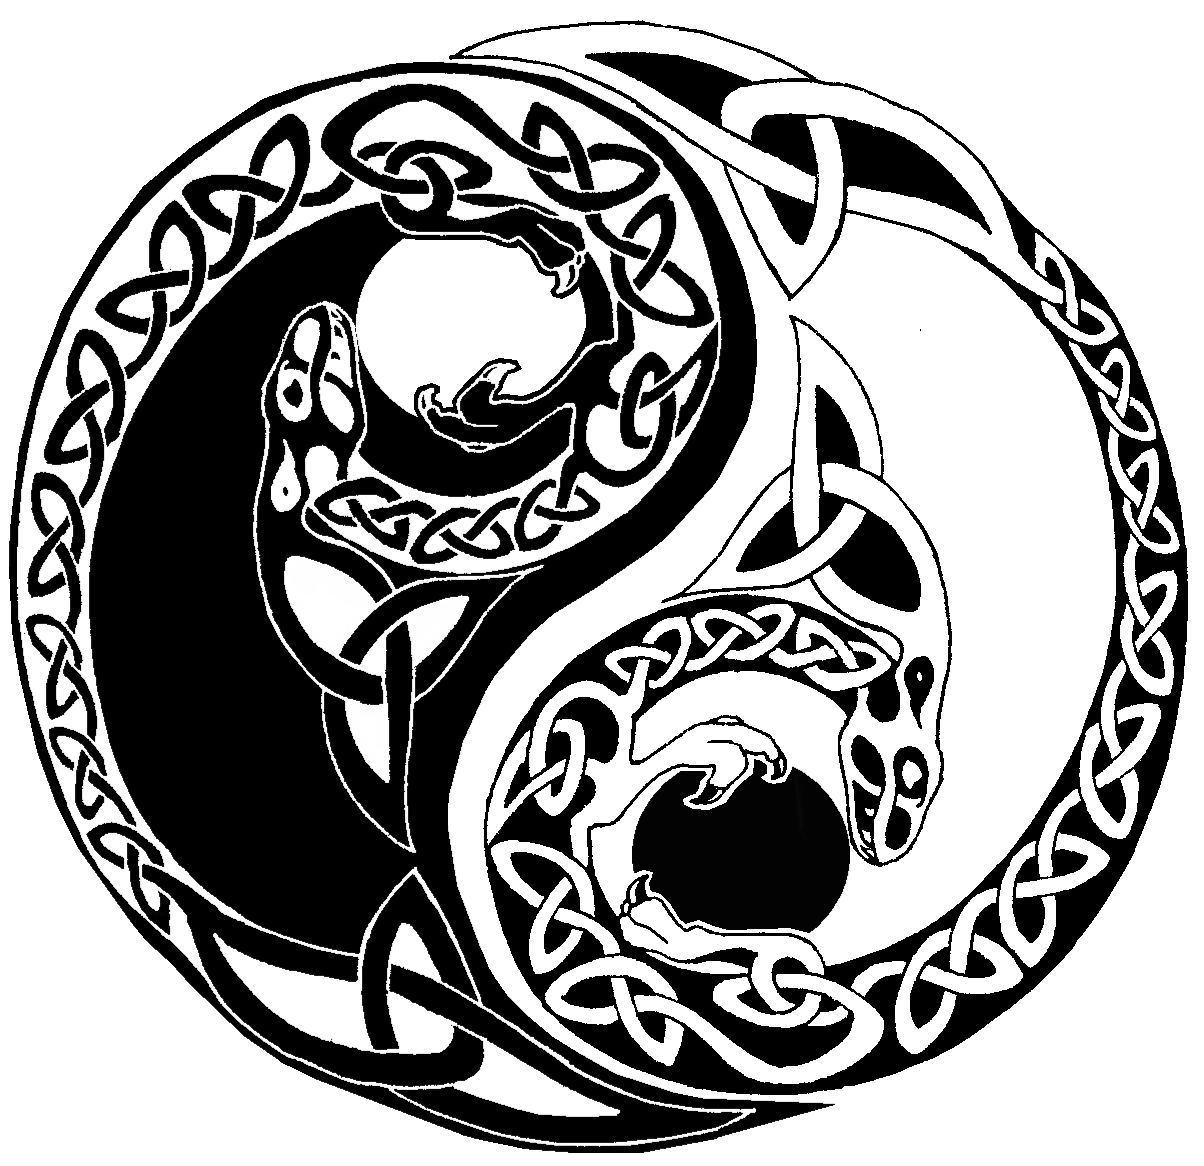 black and white ying yang dragon | Dragons of Contrast | Pinterest ...